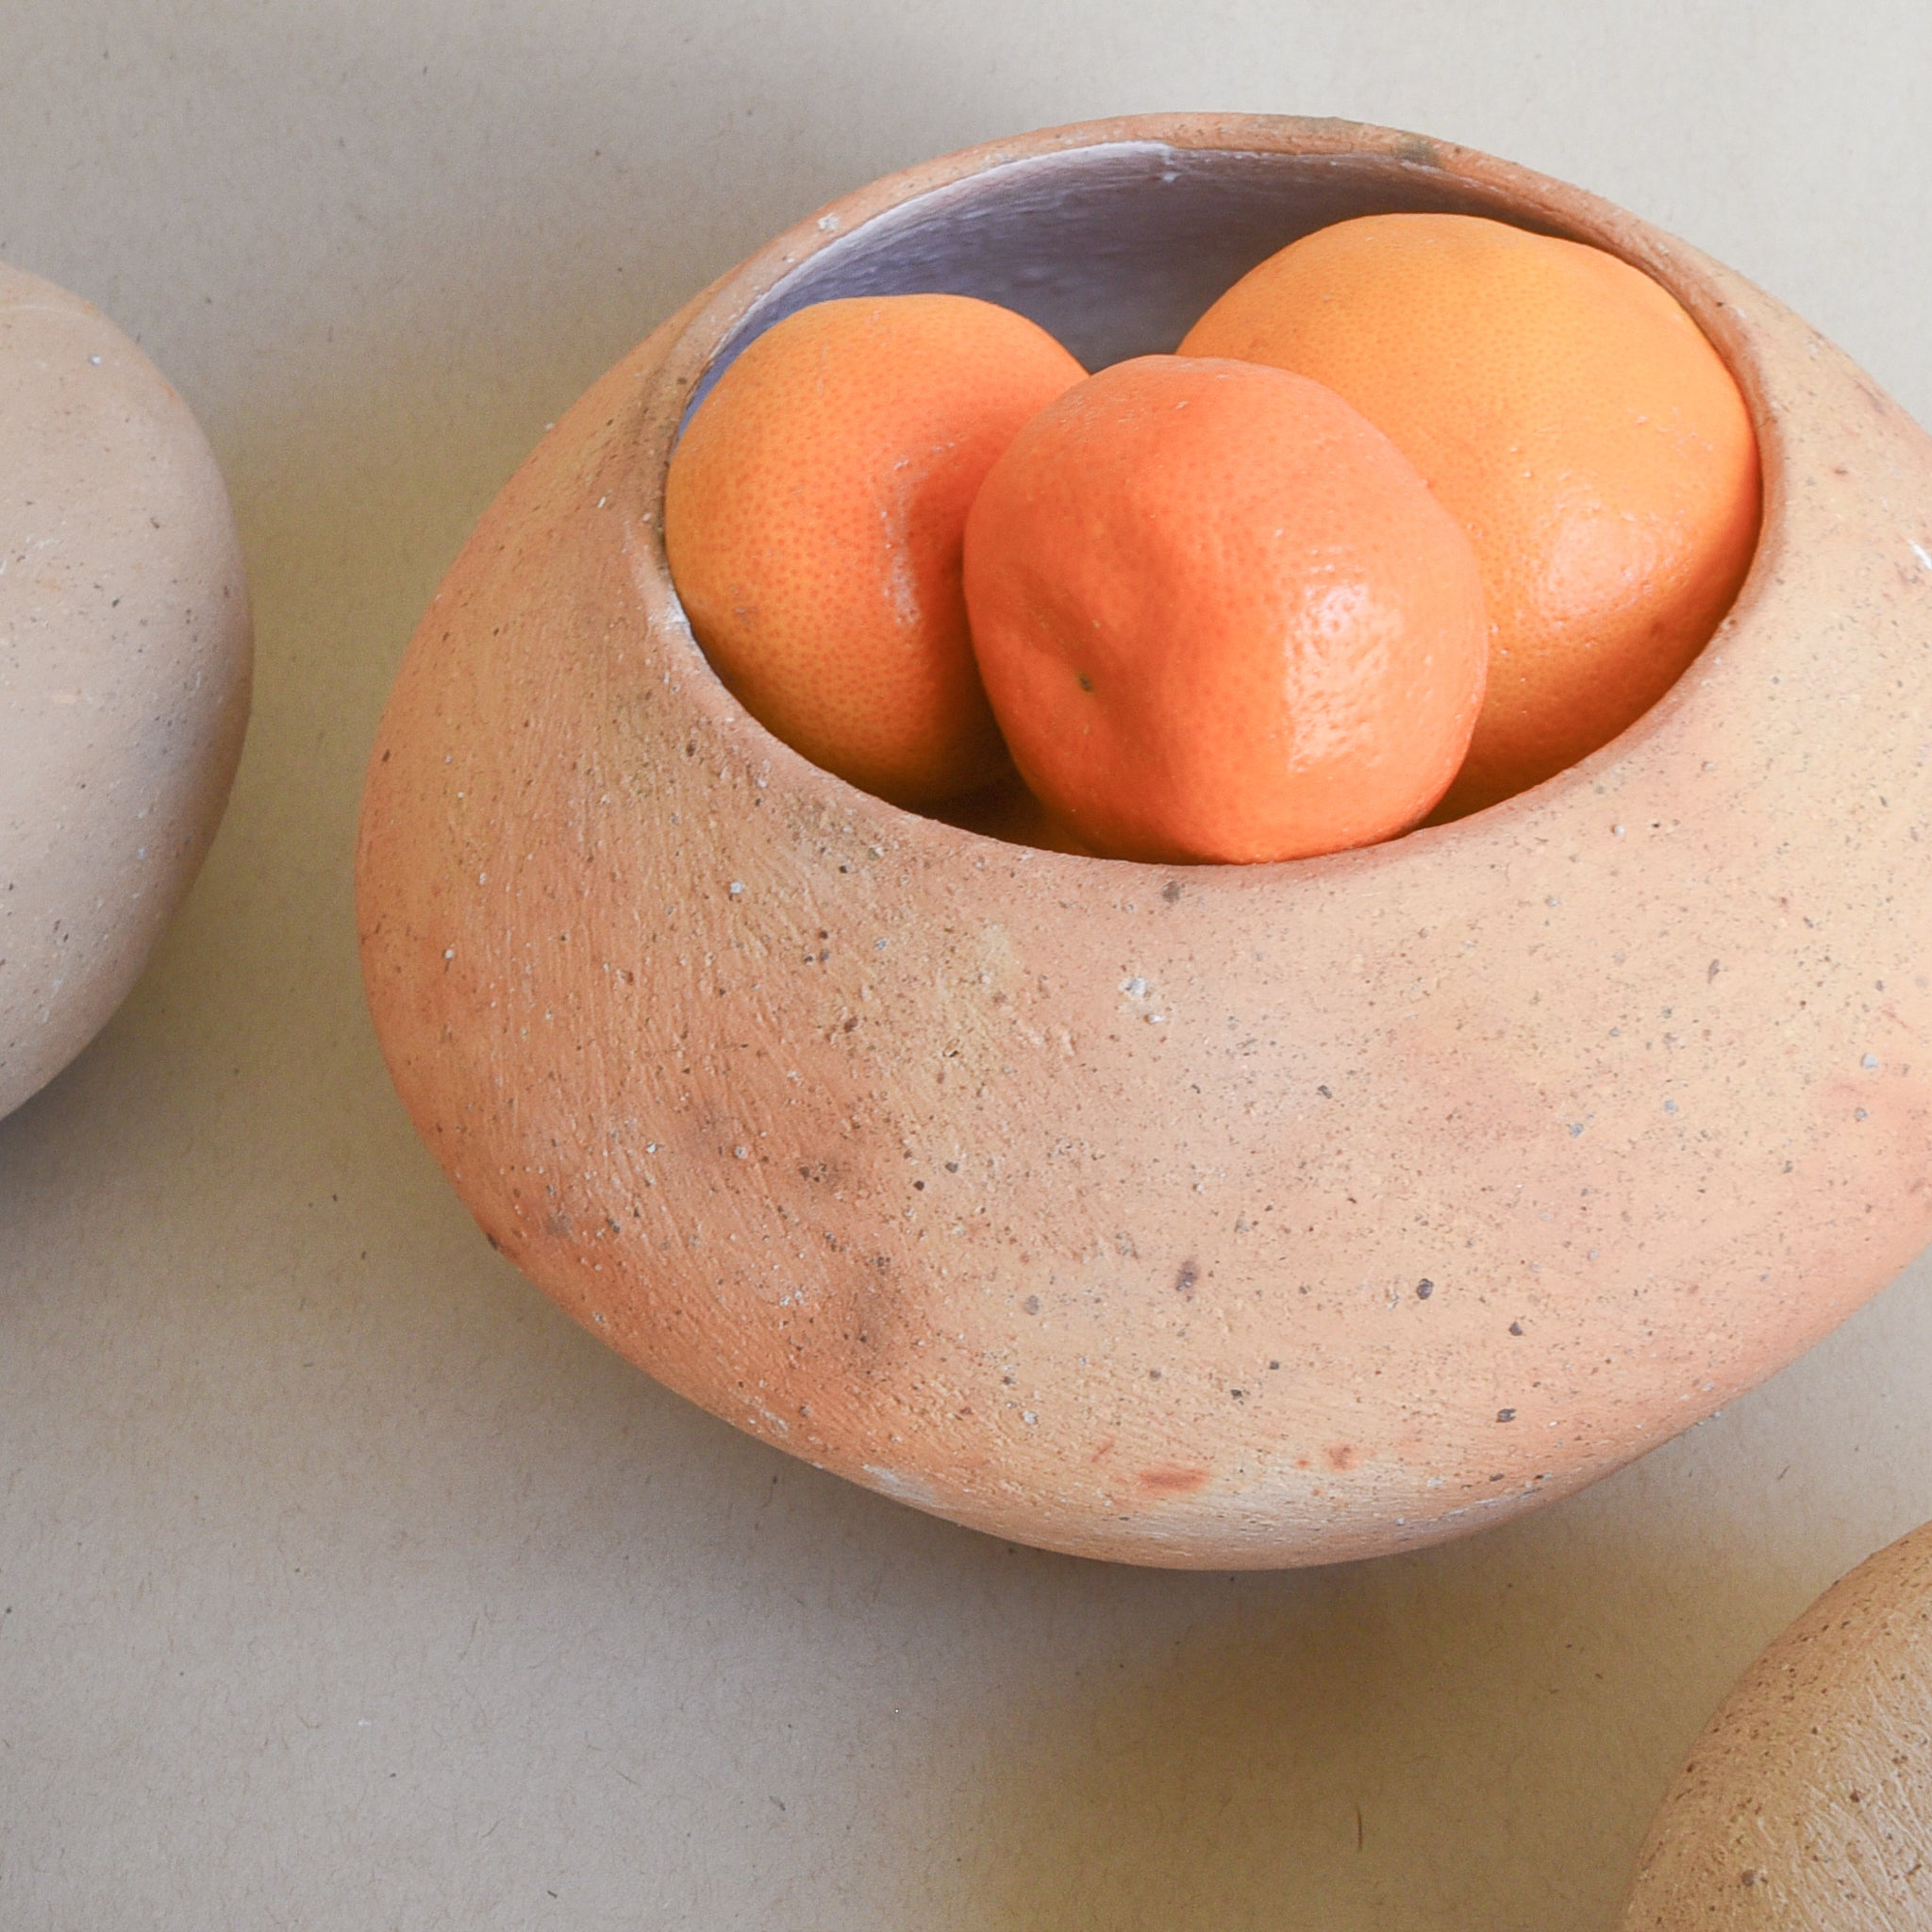 A large terracotta ceramic vase filled with oranges.